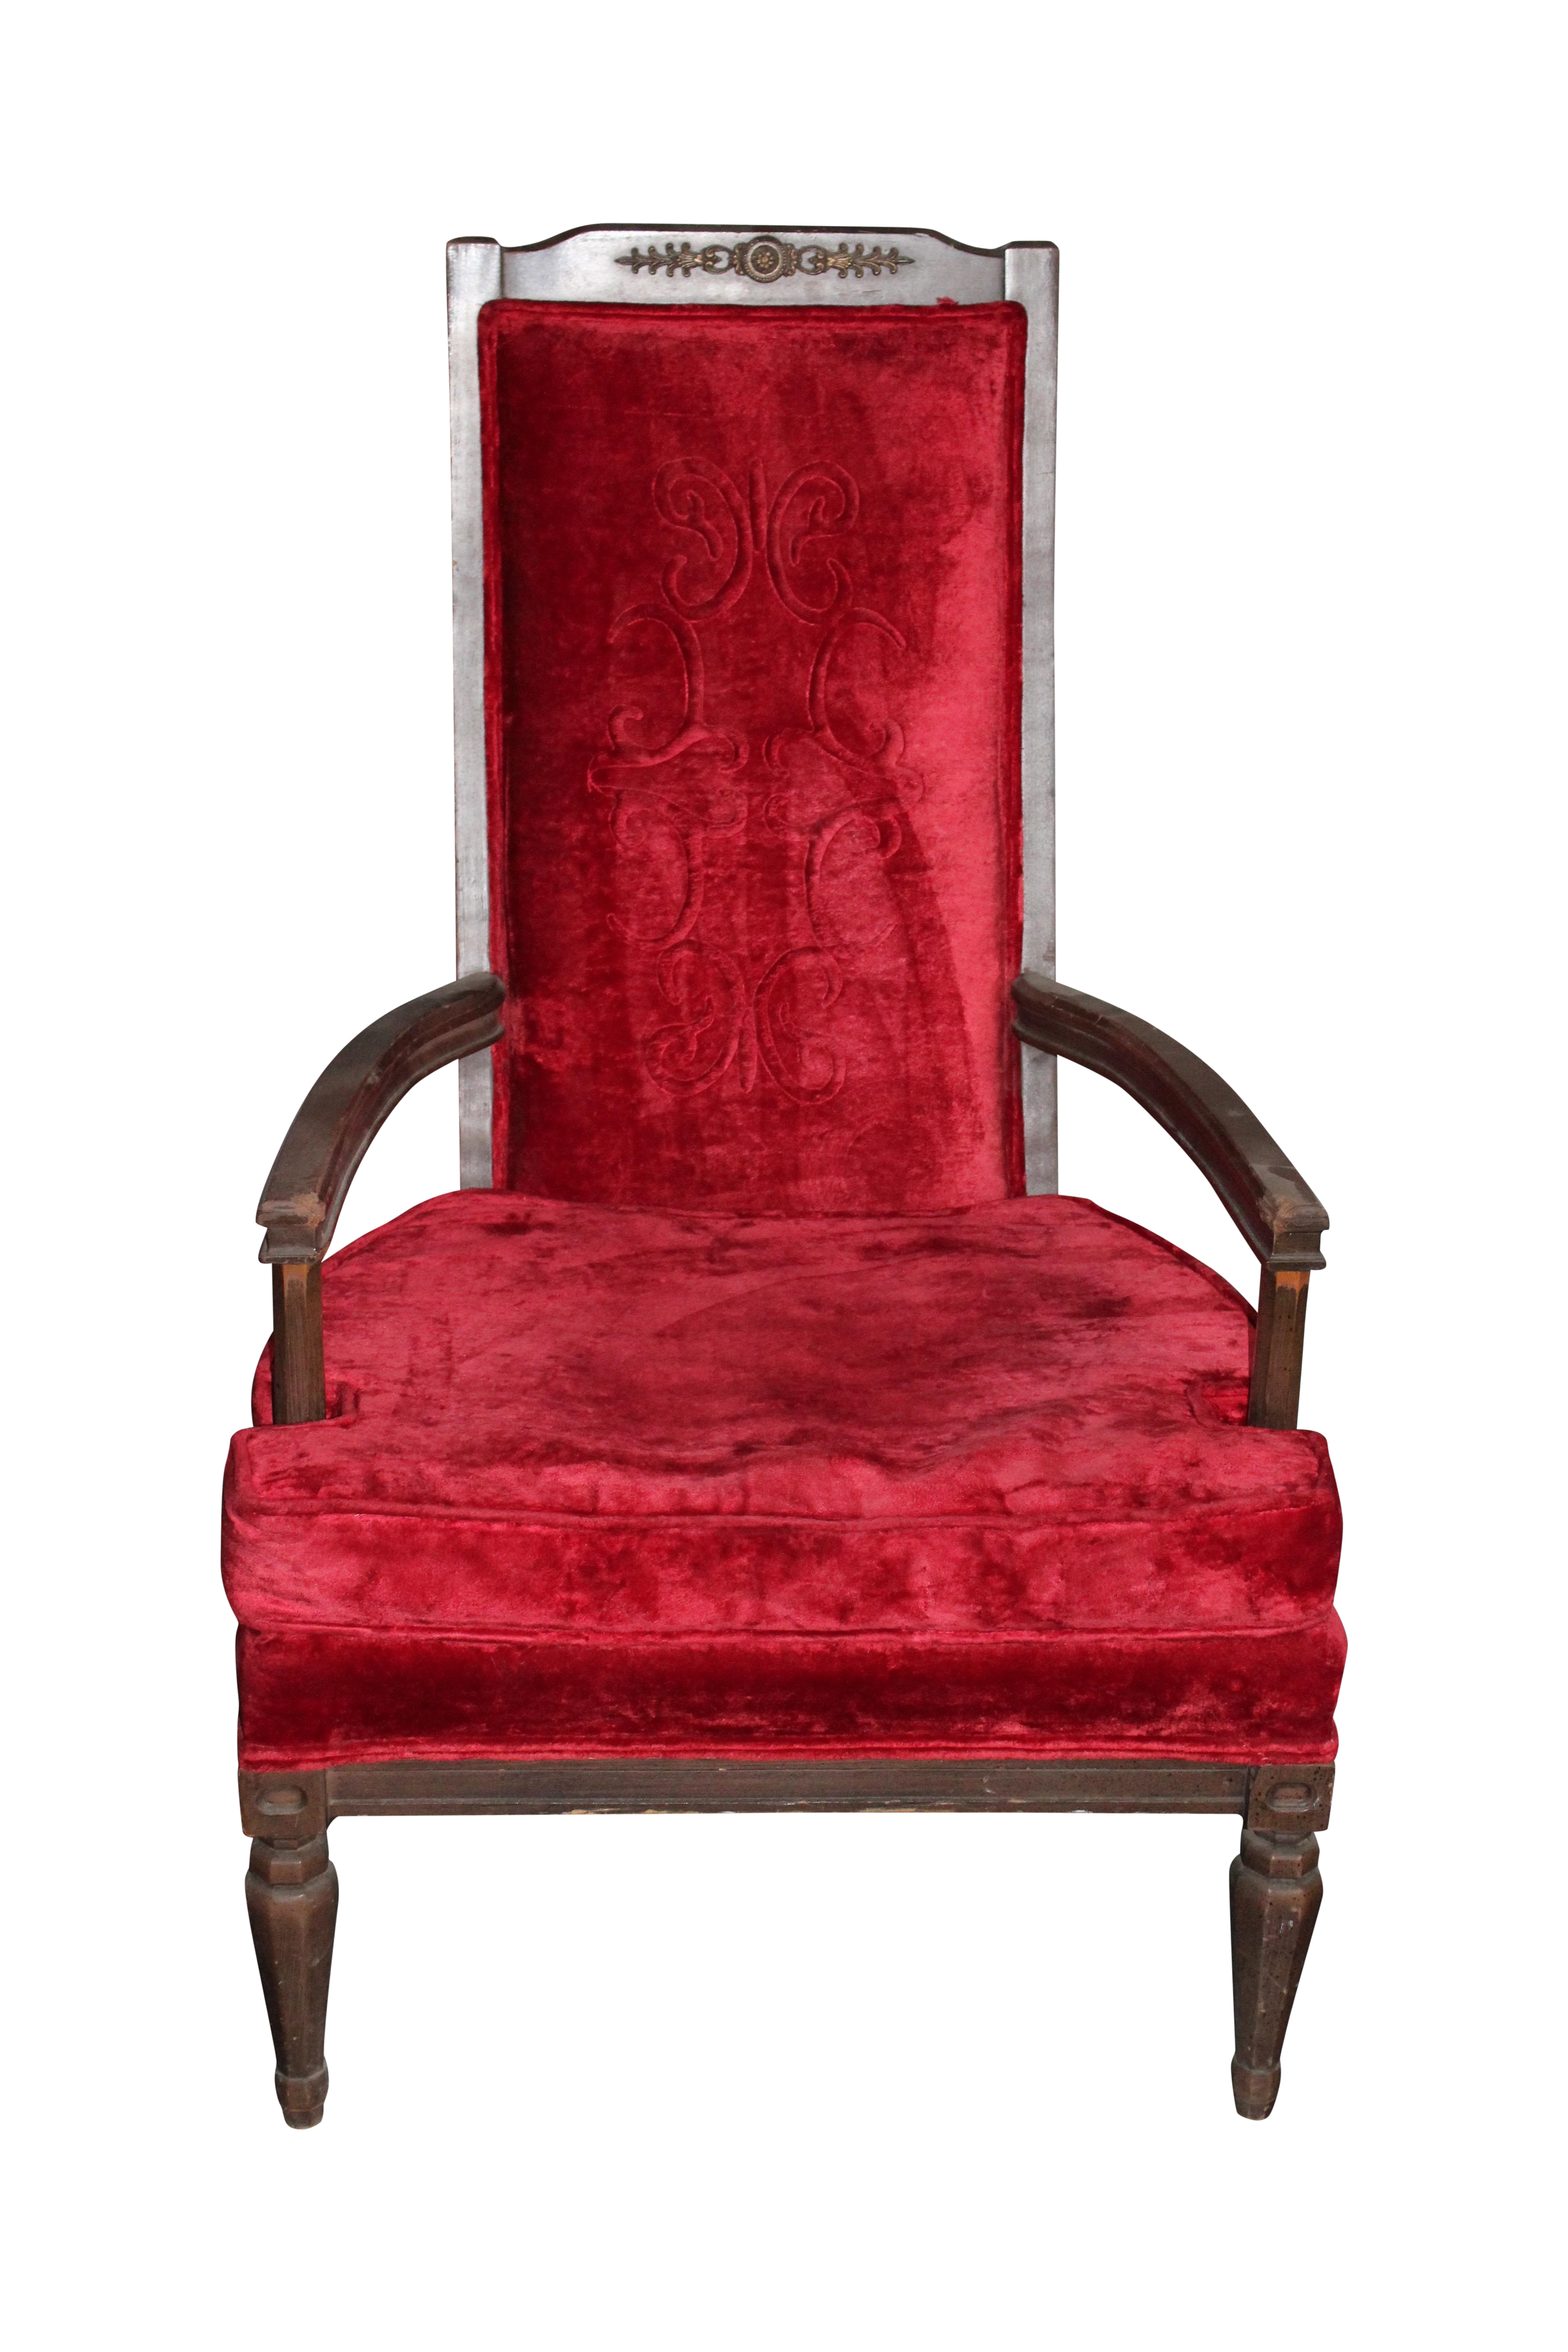 Antique Red Royal Chair